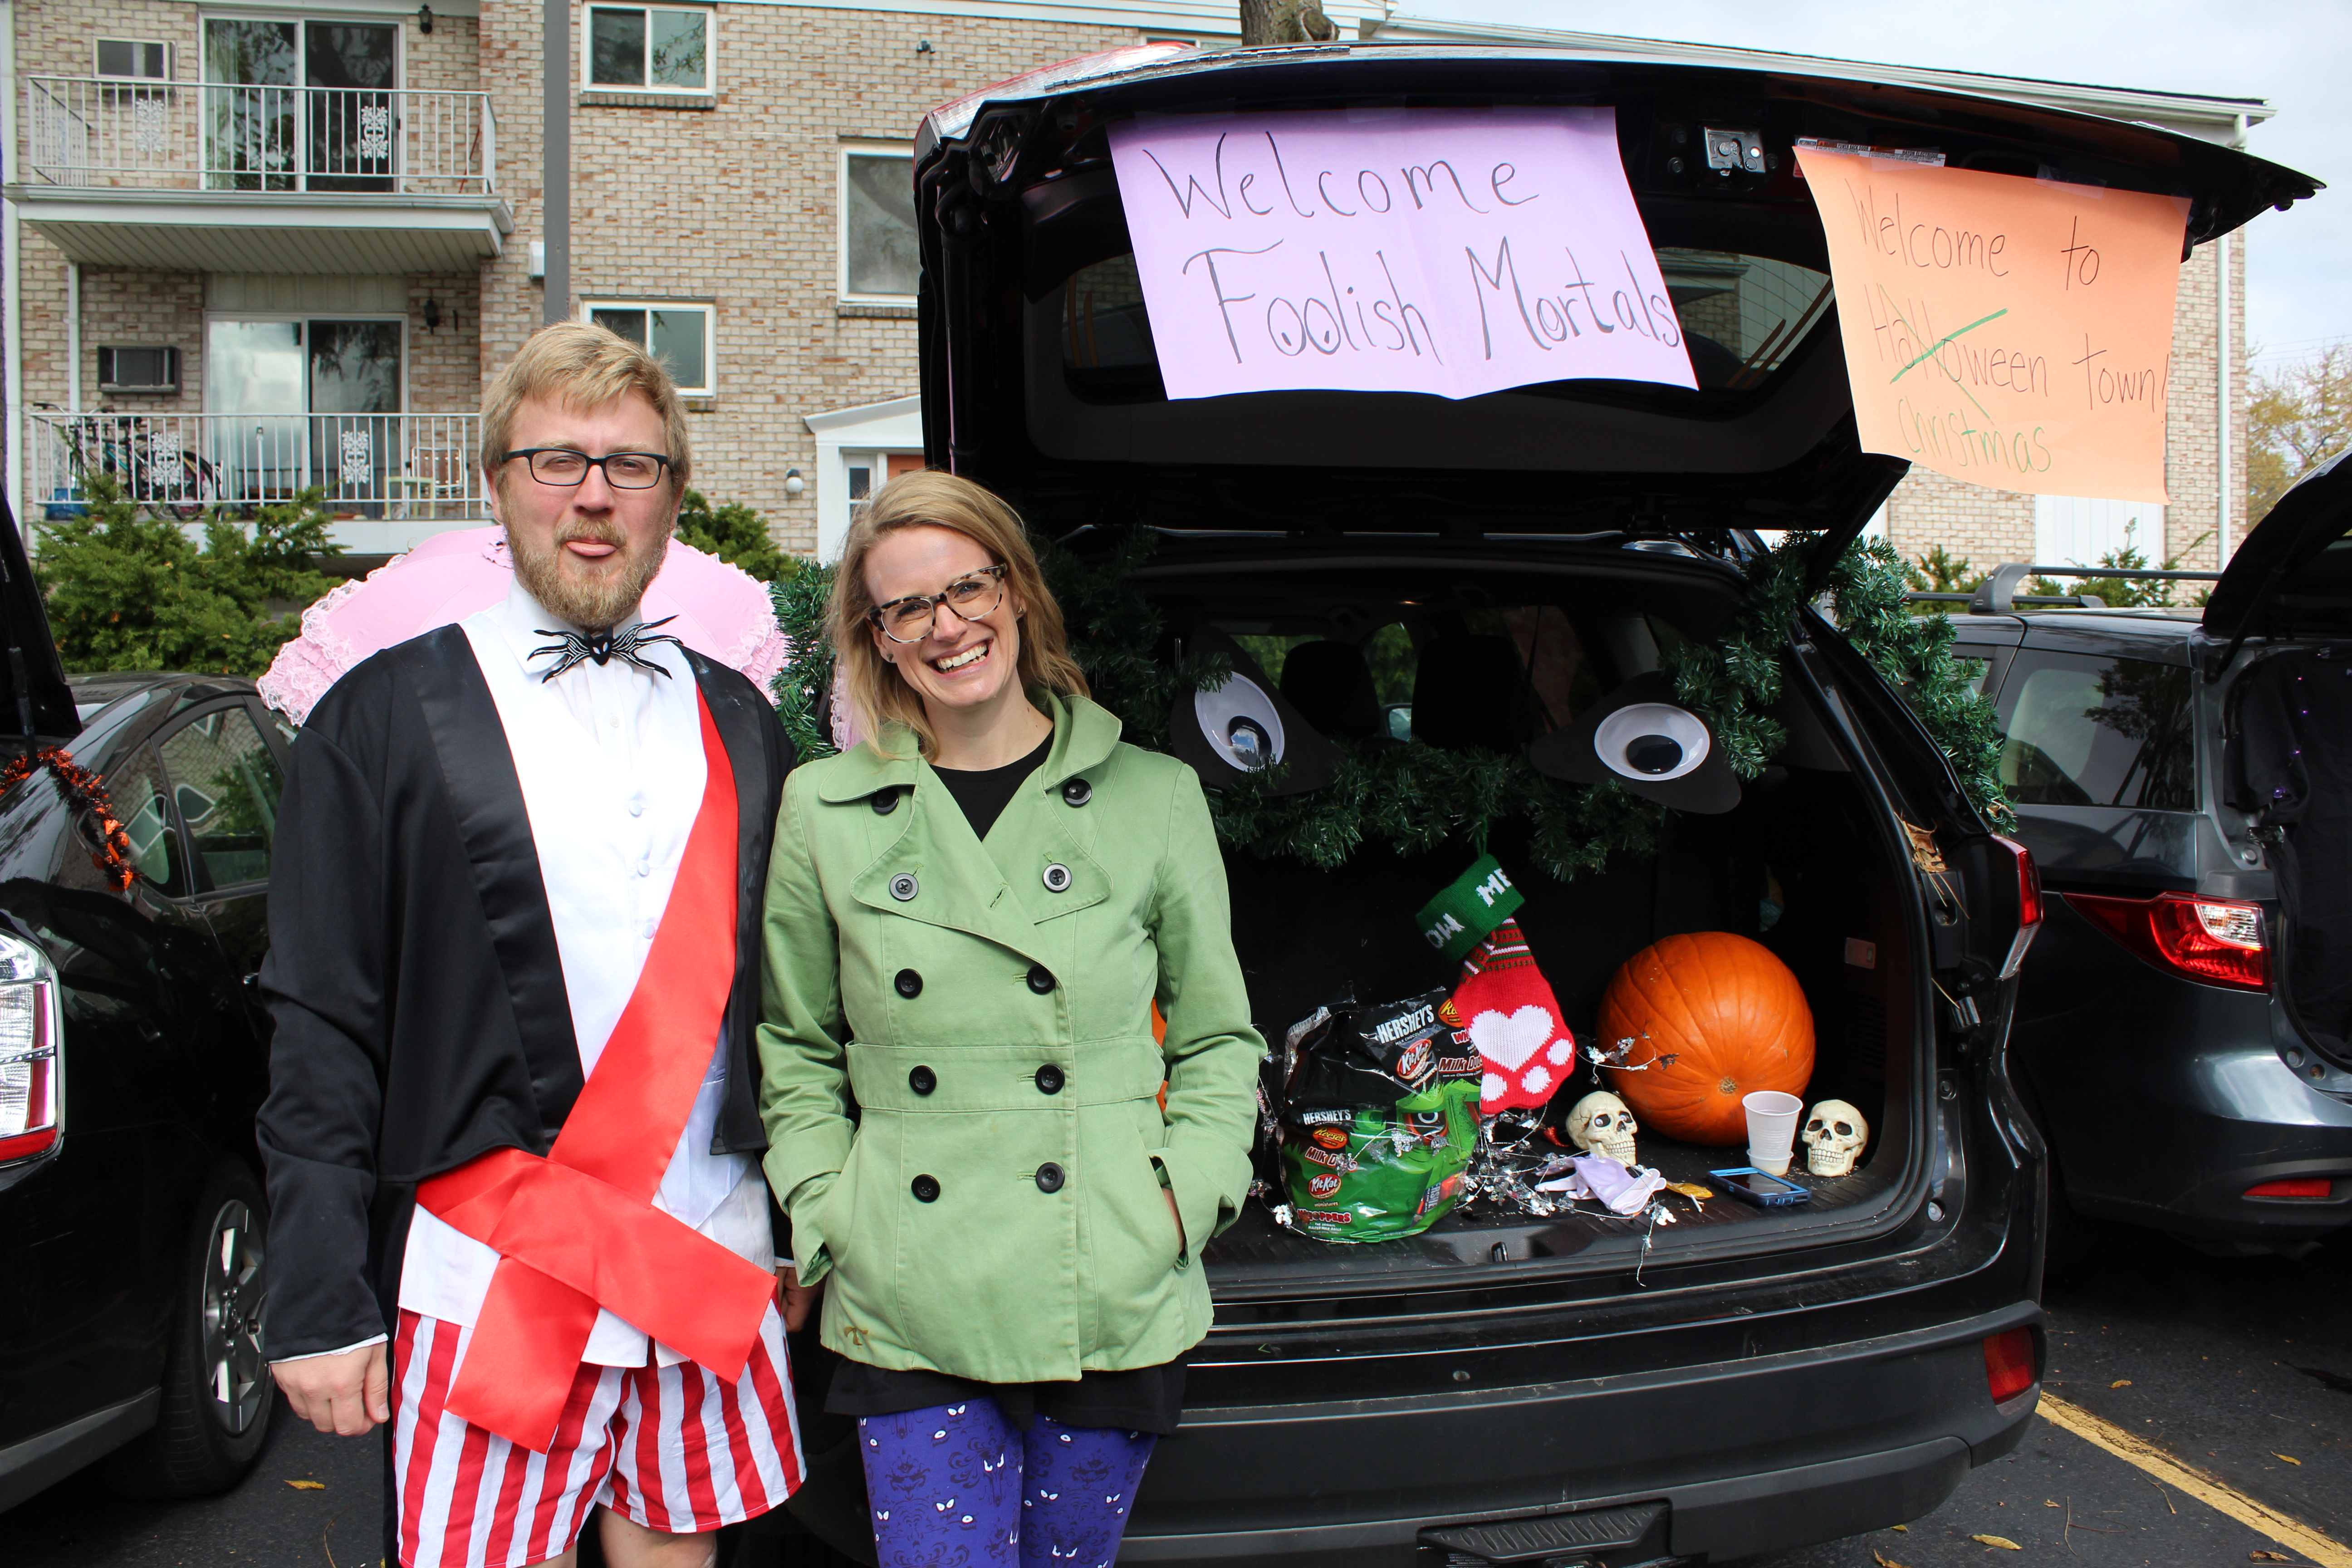 Tricked-out cars treat children at Halloween event | Spartan Newsroom